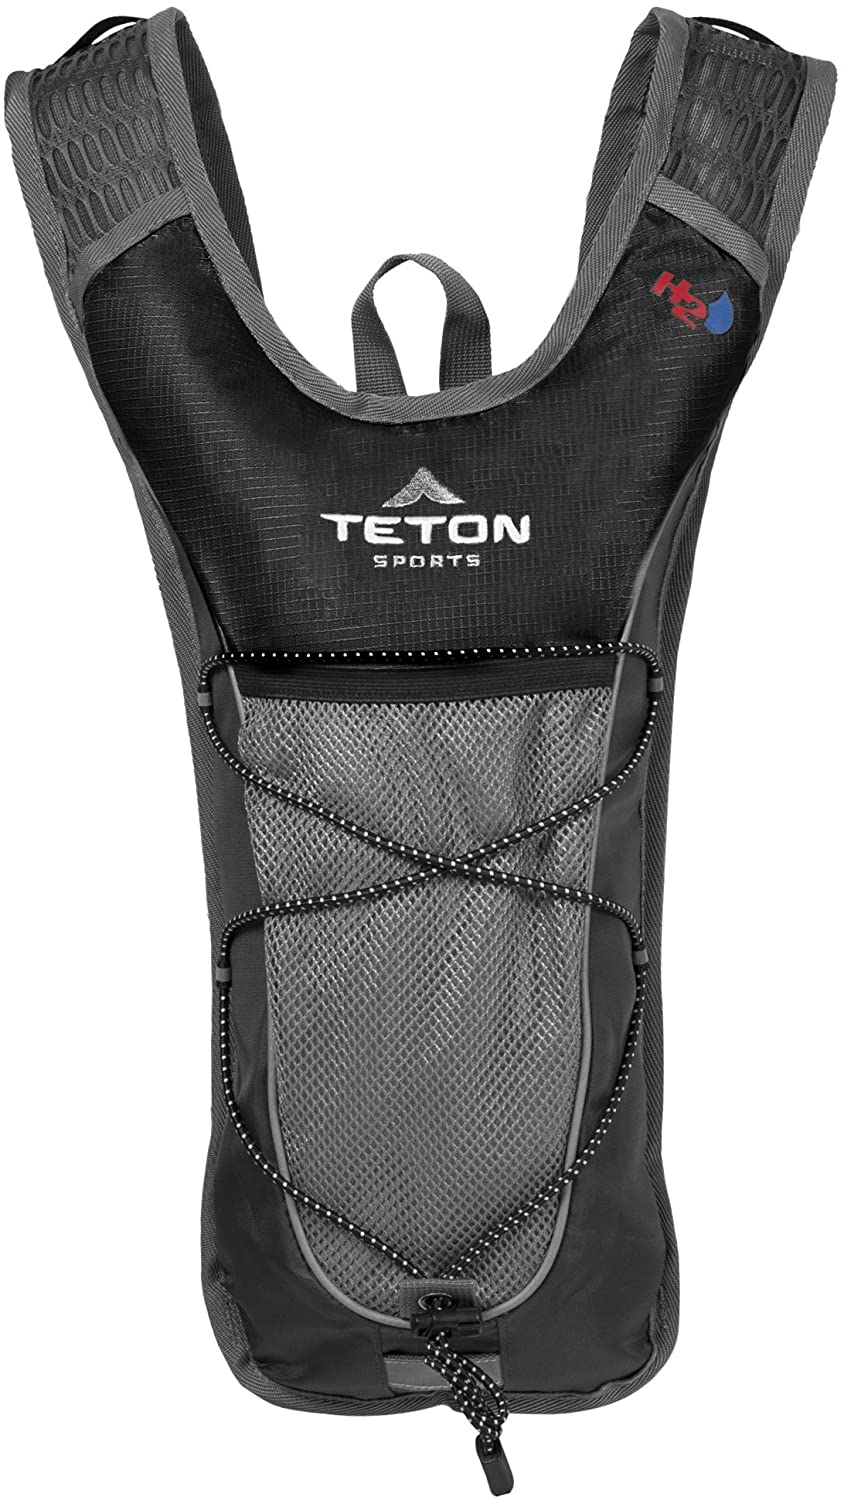 TETON Sports Hydration Pack for Trail Running